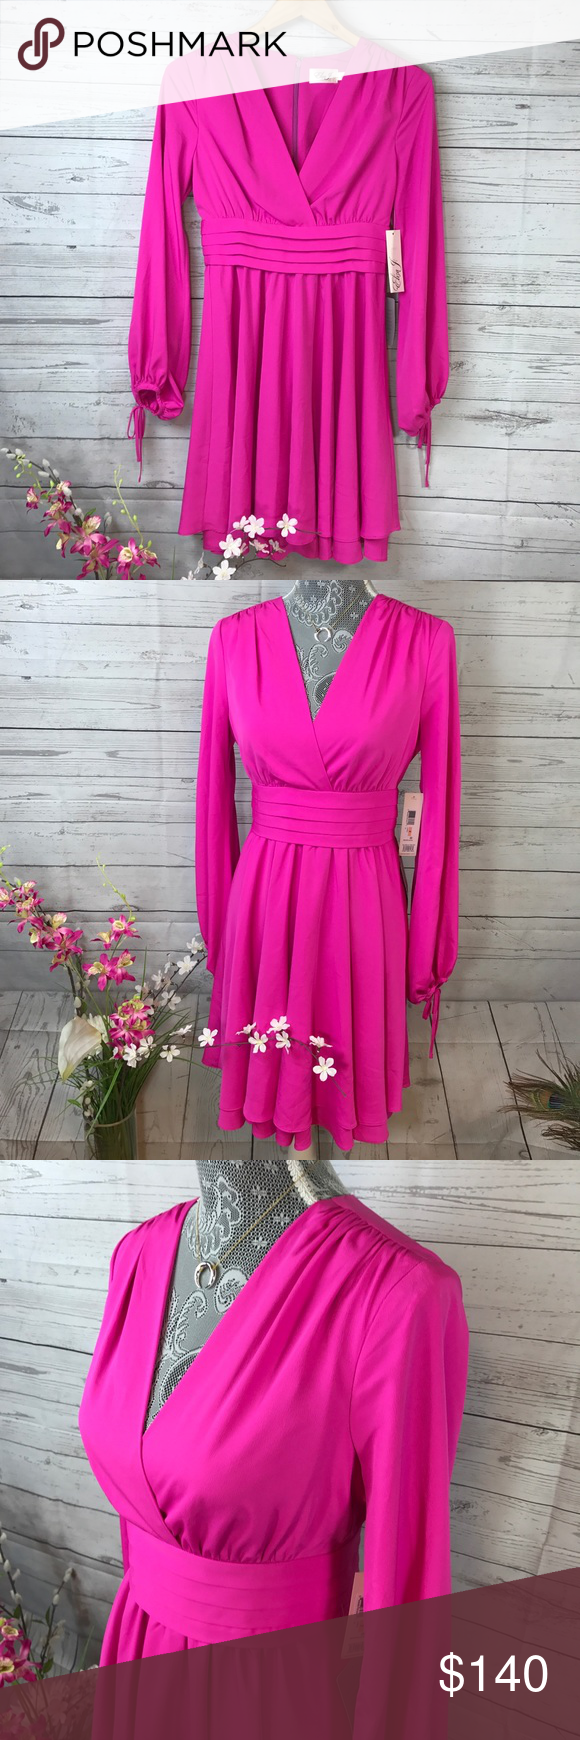 Nwt eliza j dress customer support and delivery